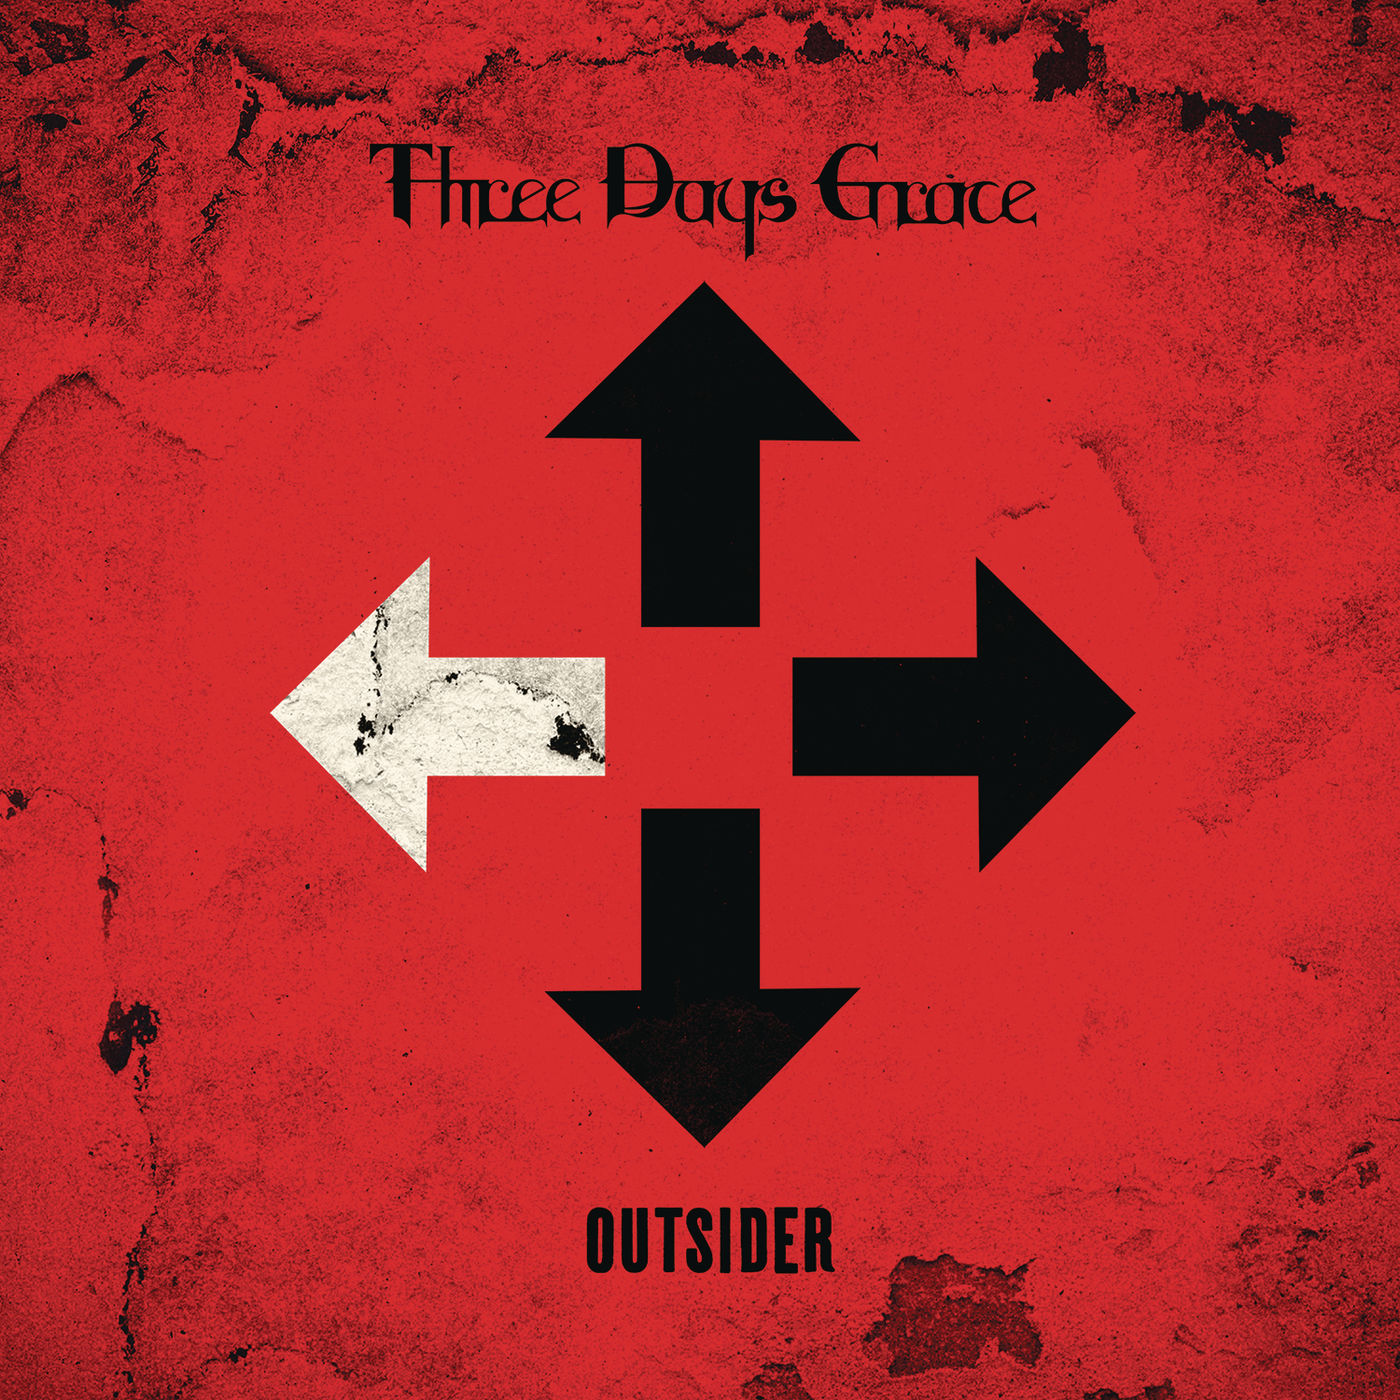 Three Days Grace - I Am An Outsider - Single Cover